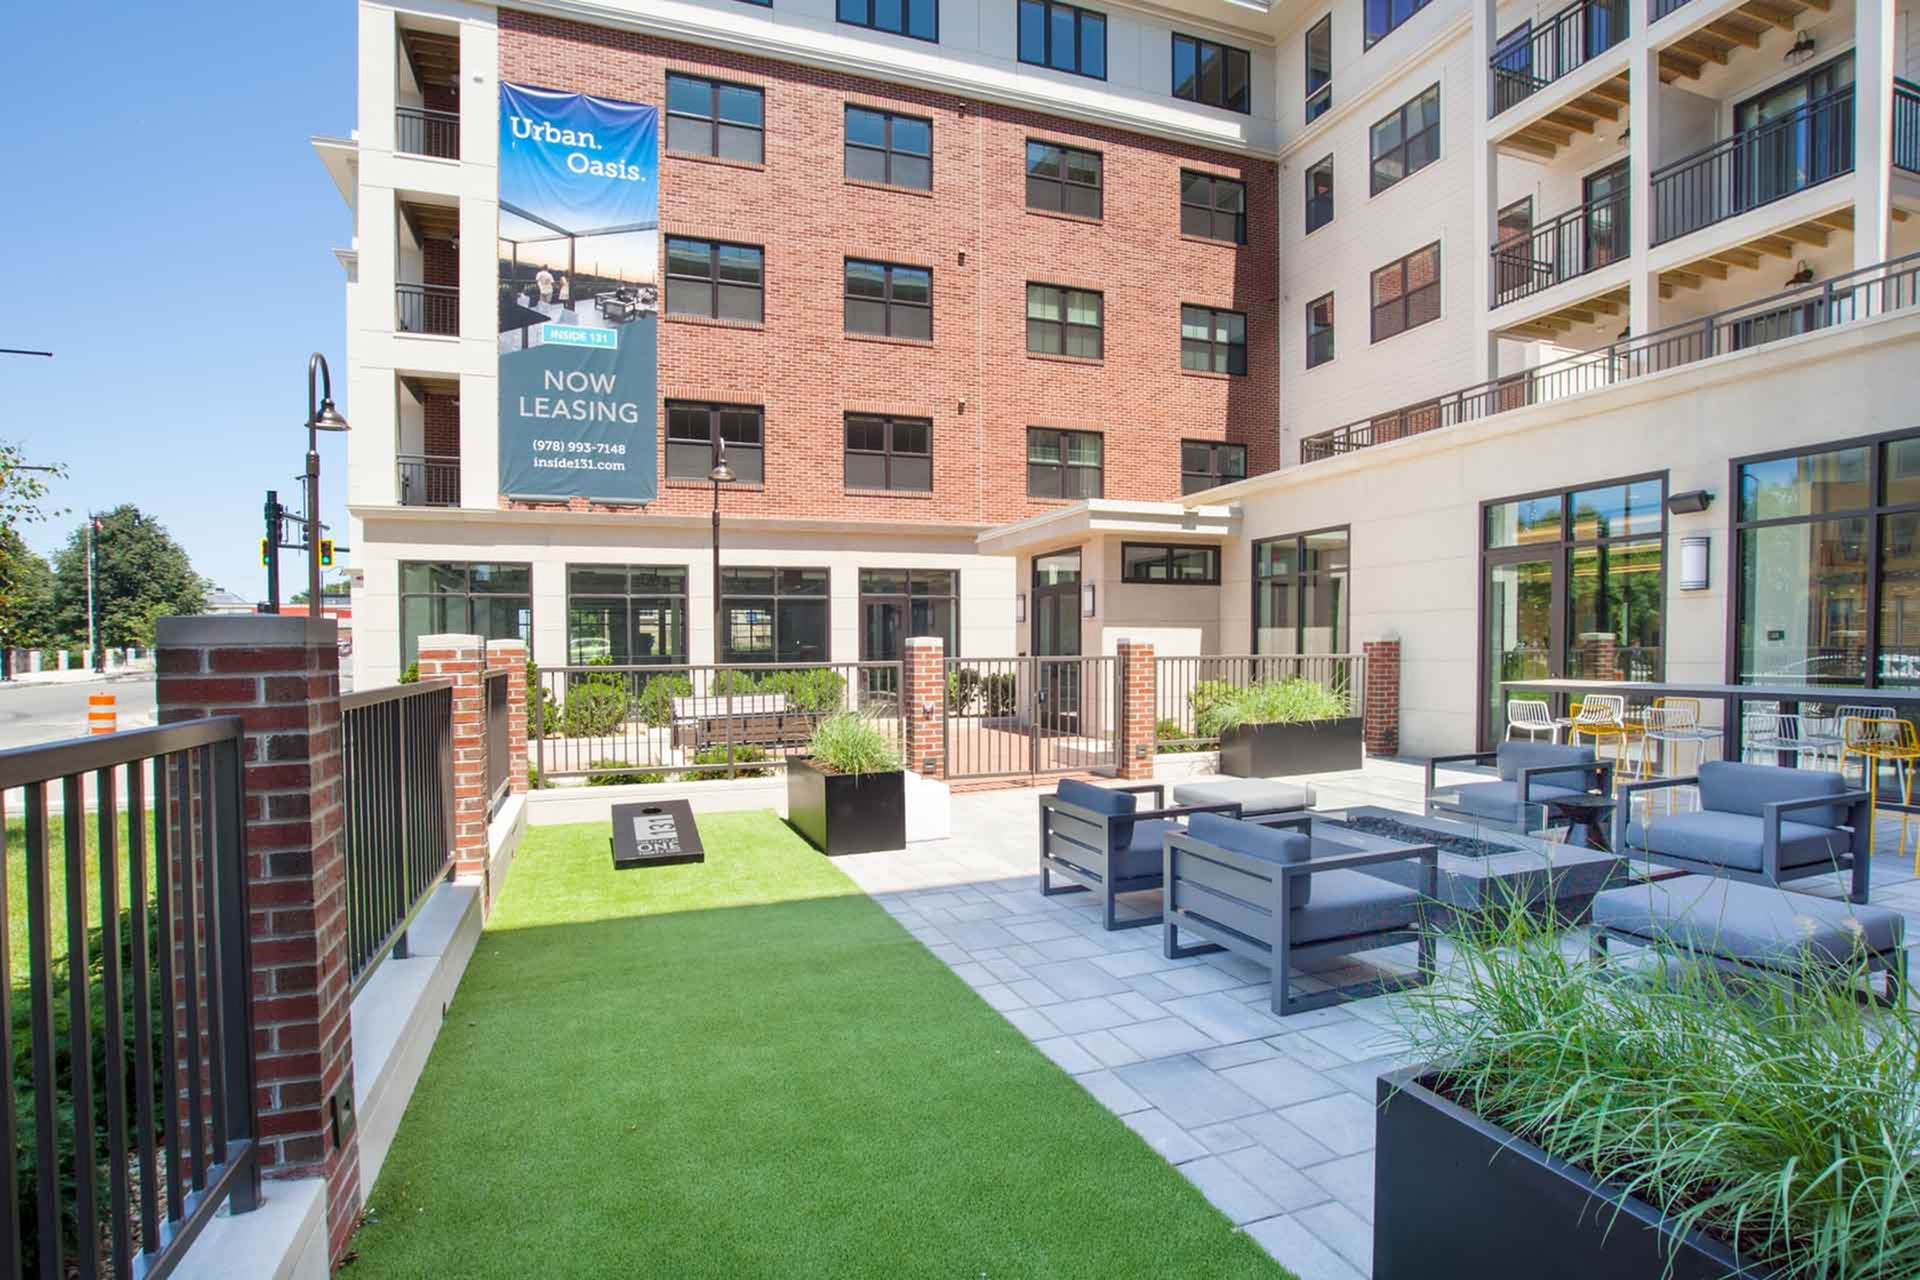 Fenced-in Courtyard | Beverly MA Luxury Apartments | The Flats at 131